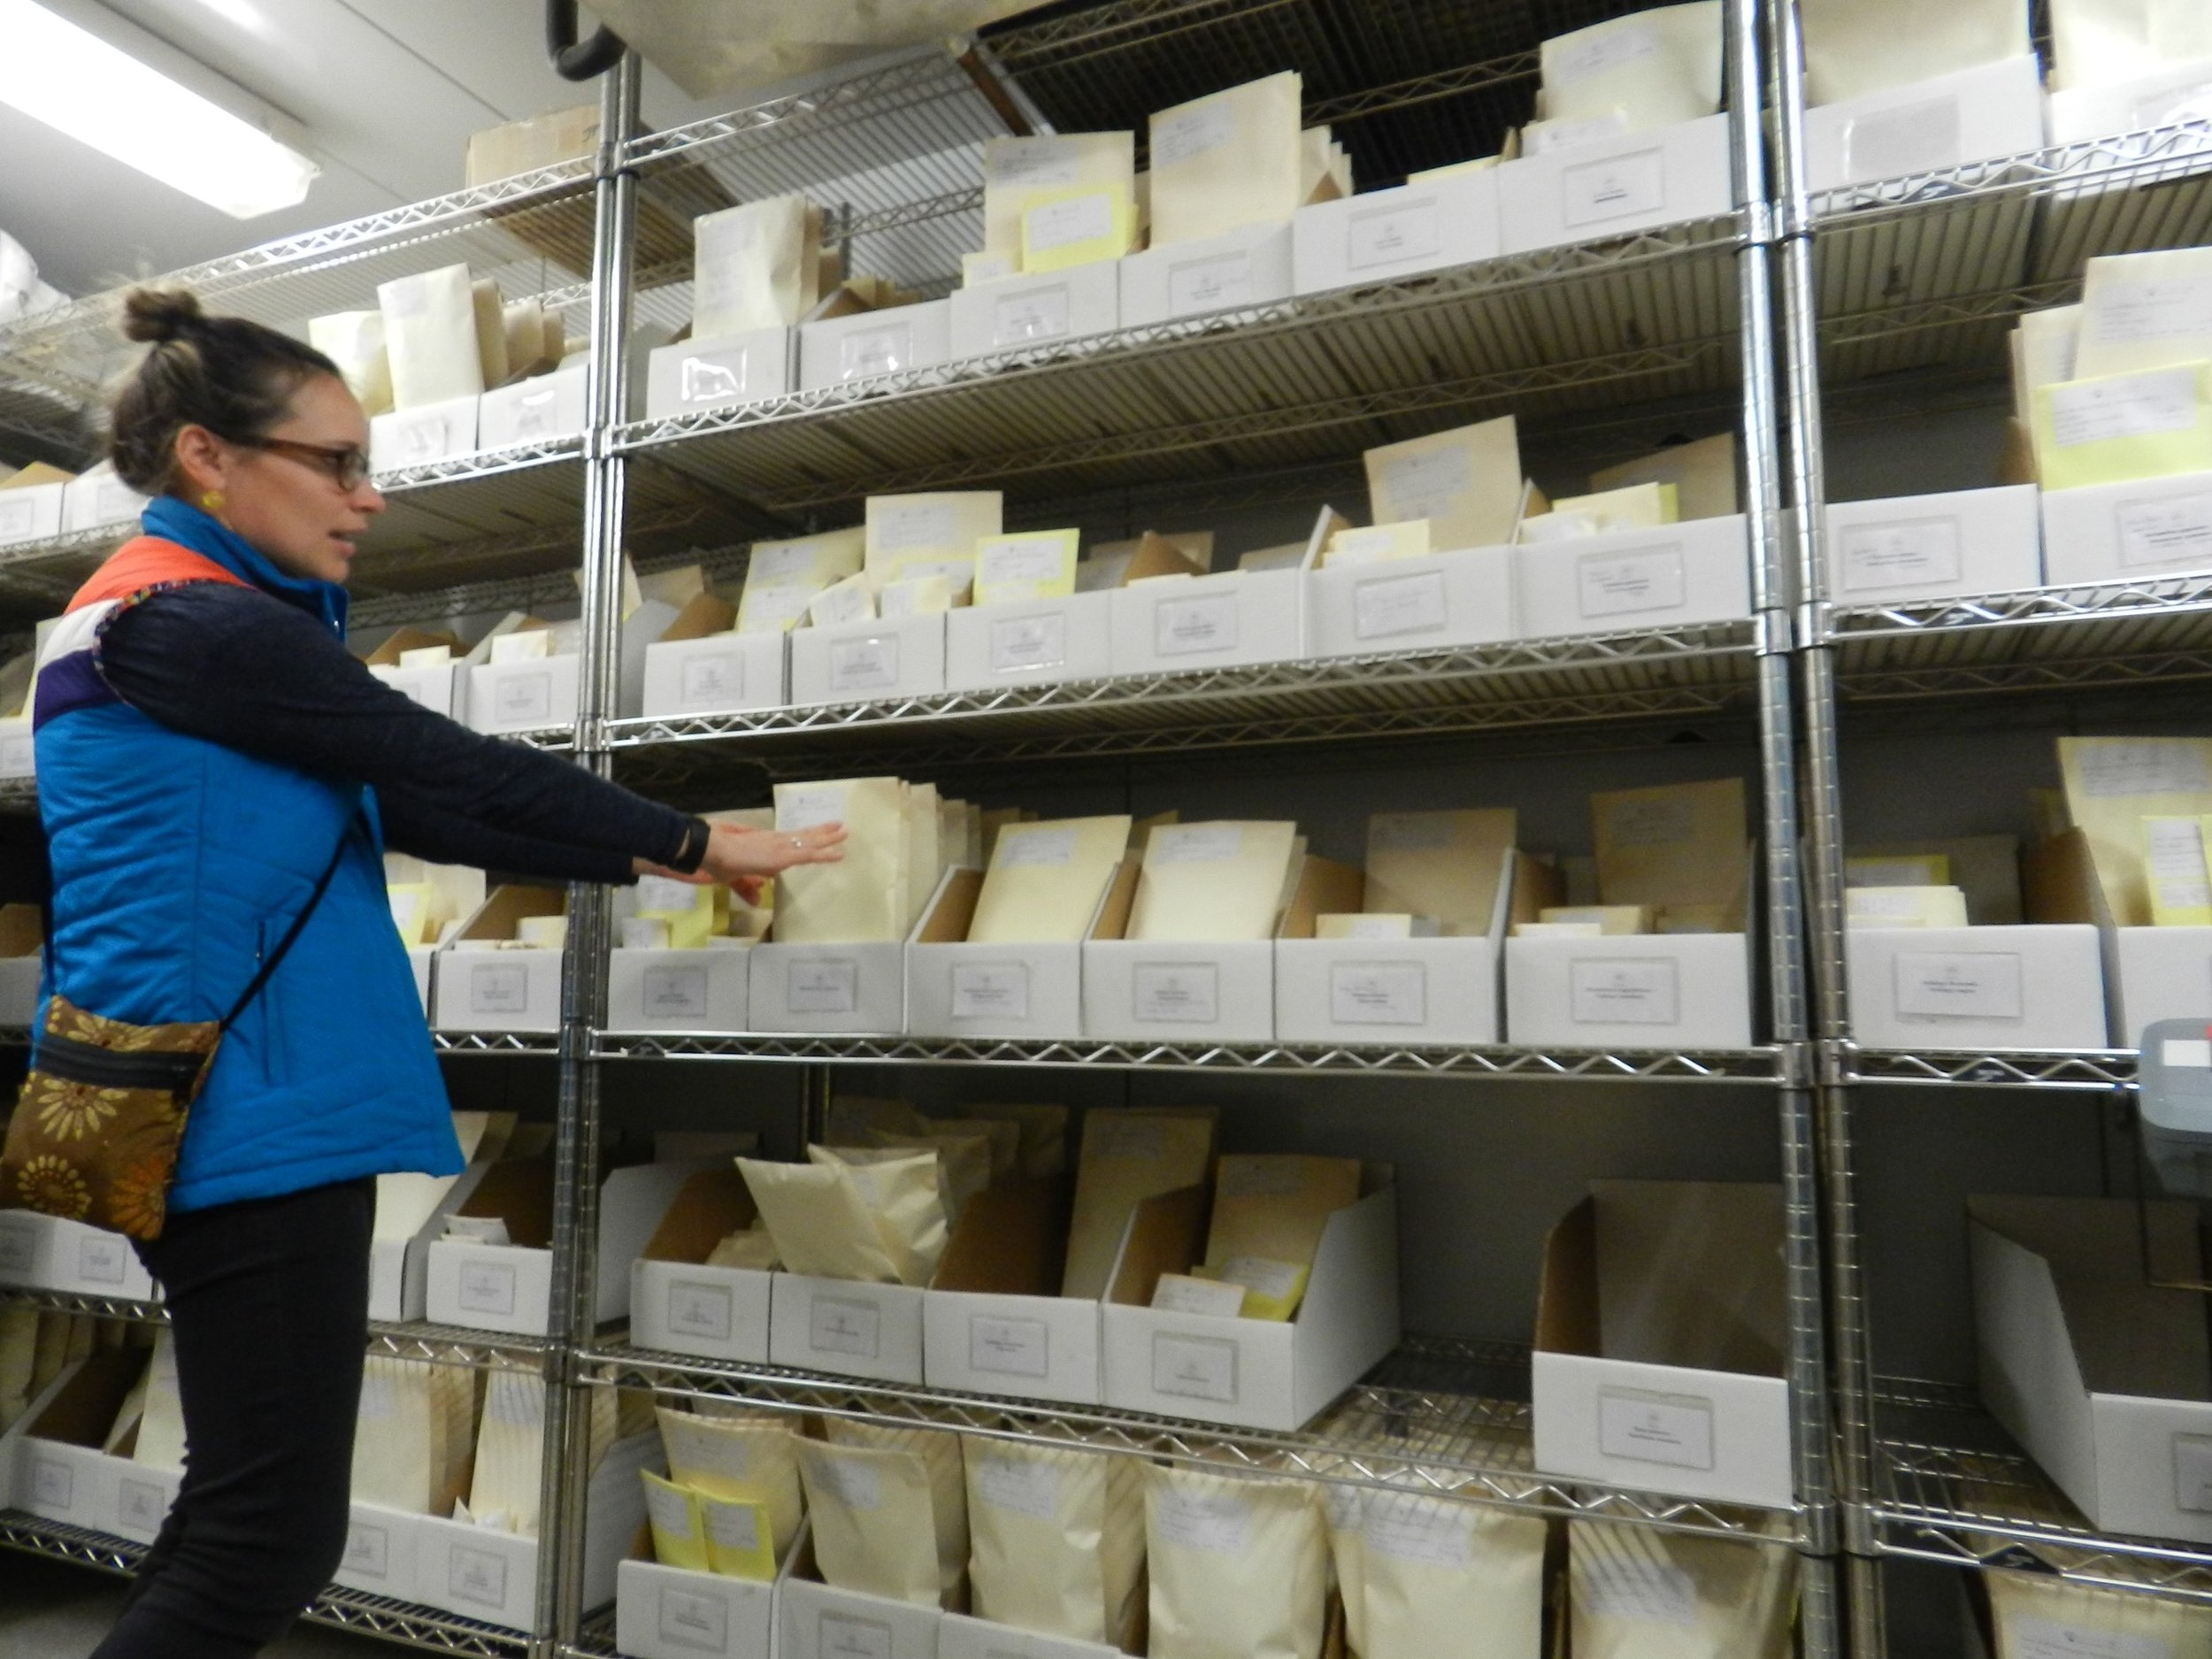 Clara Holmes, seed collection coordinator, explaining how seeds are collected and stored in the seed bank of the Greenbelt Native Plant Center. So far, ca. 633 species are stored in this bank.